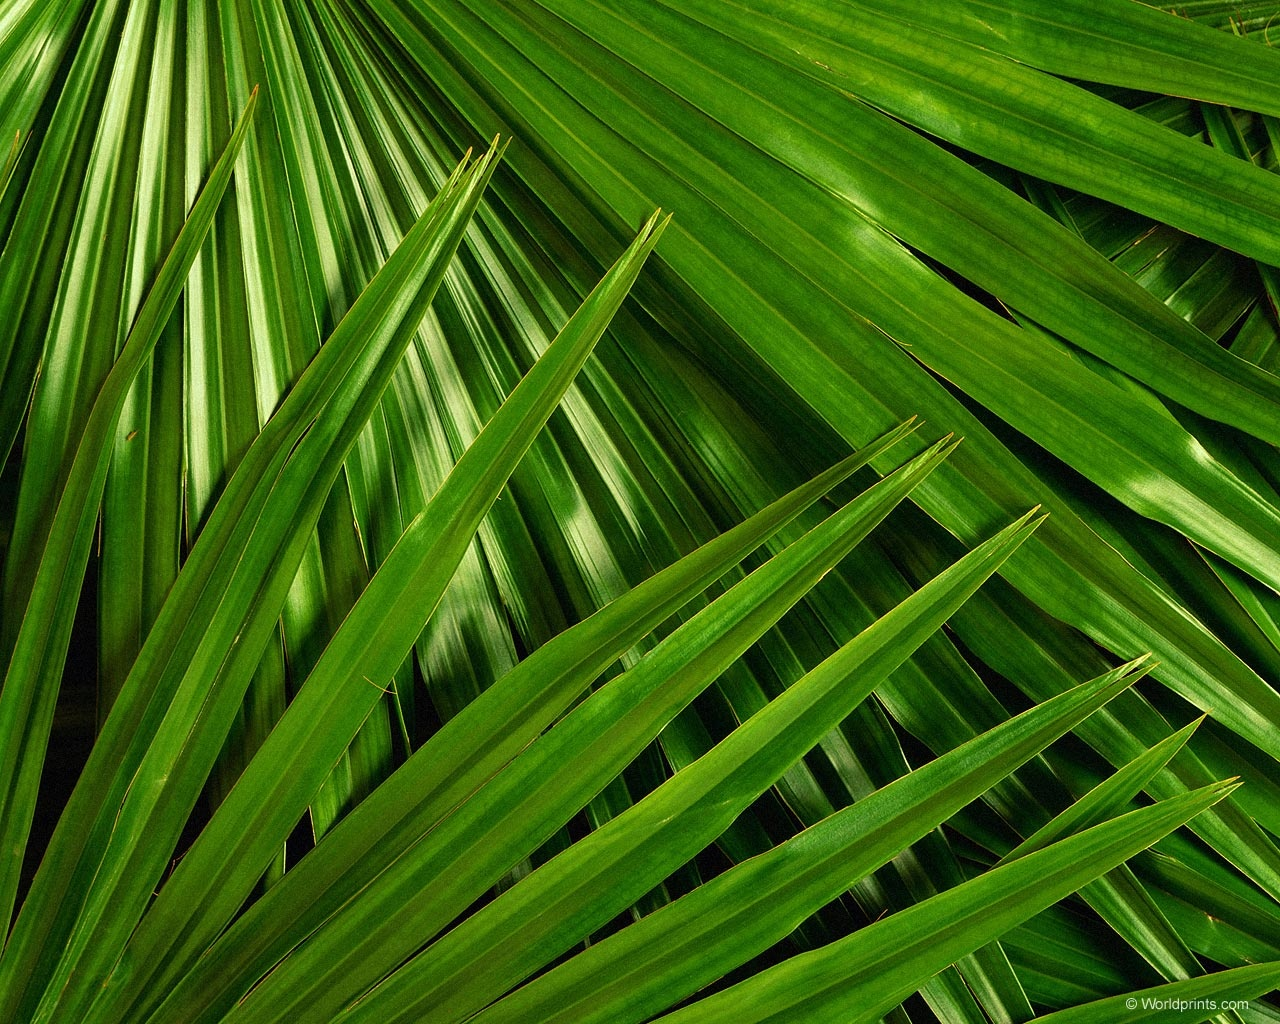 Palm Leaves Wallpapersuggestcom Wallpapers Palm Branch Palm Sunday Background 1280x1024 Download Hd Wallpaper Wallpapertip